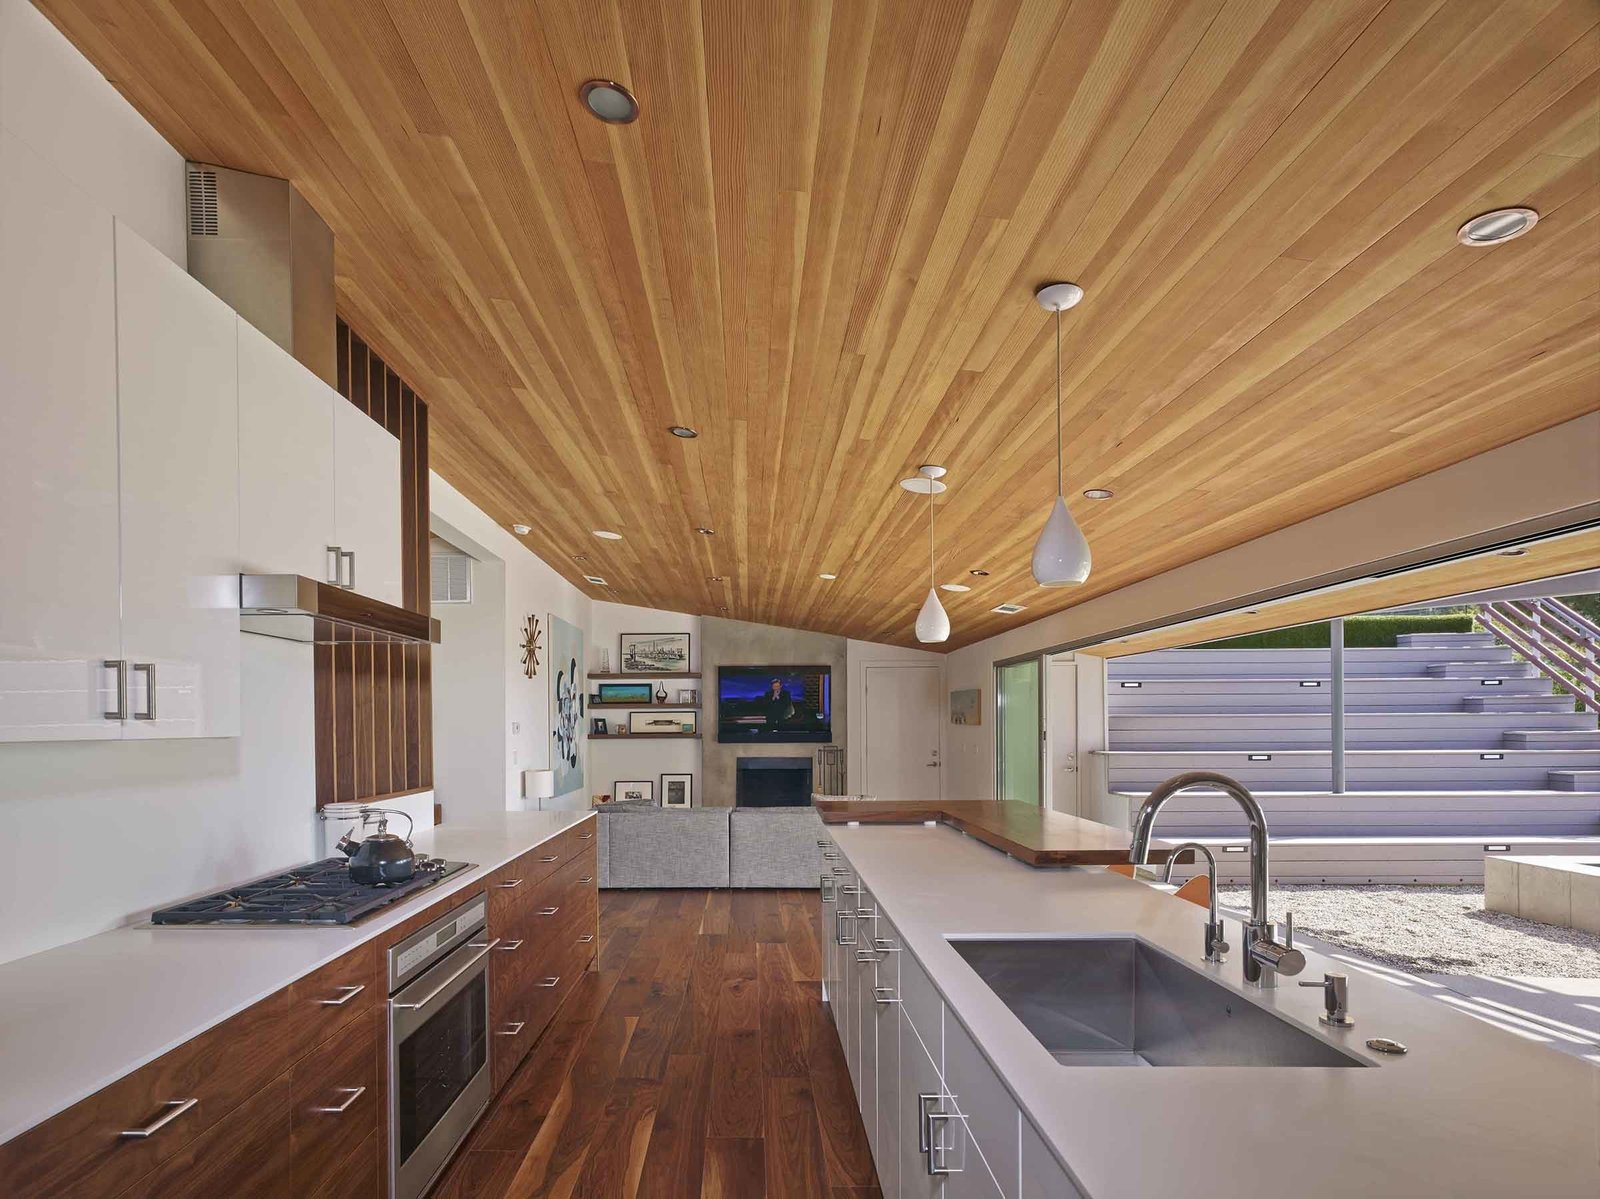 Tagged: Kitchen and Medium Hardwood Floor. A Mid-Century Modern Makeover in Los Angeles - Photo 1 of 6